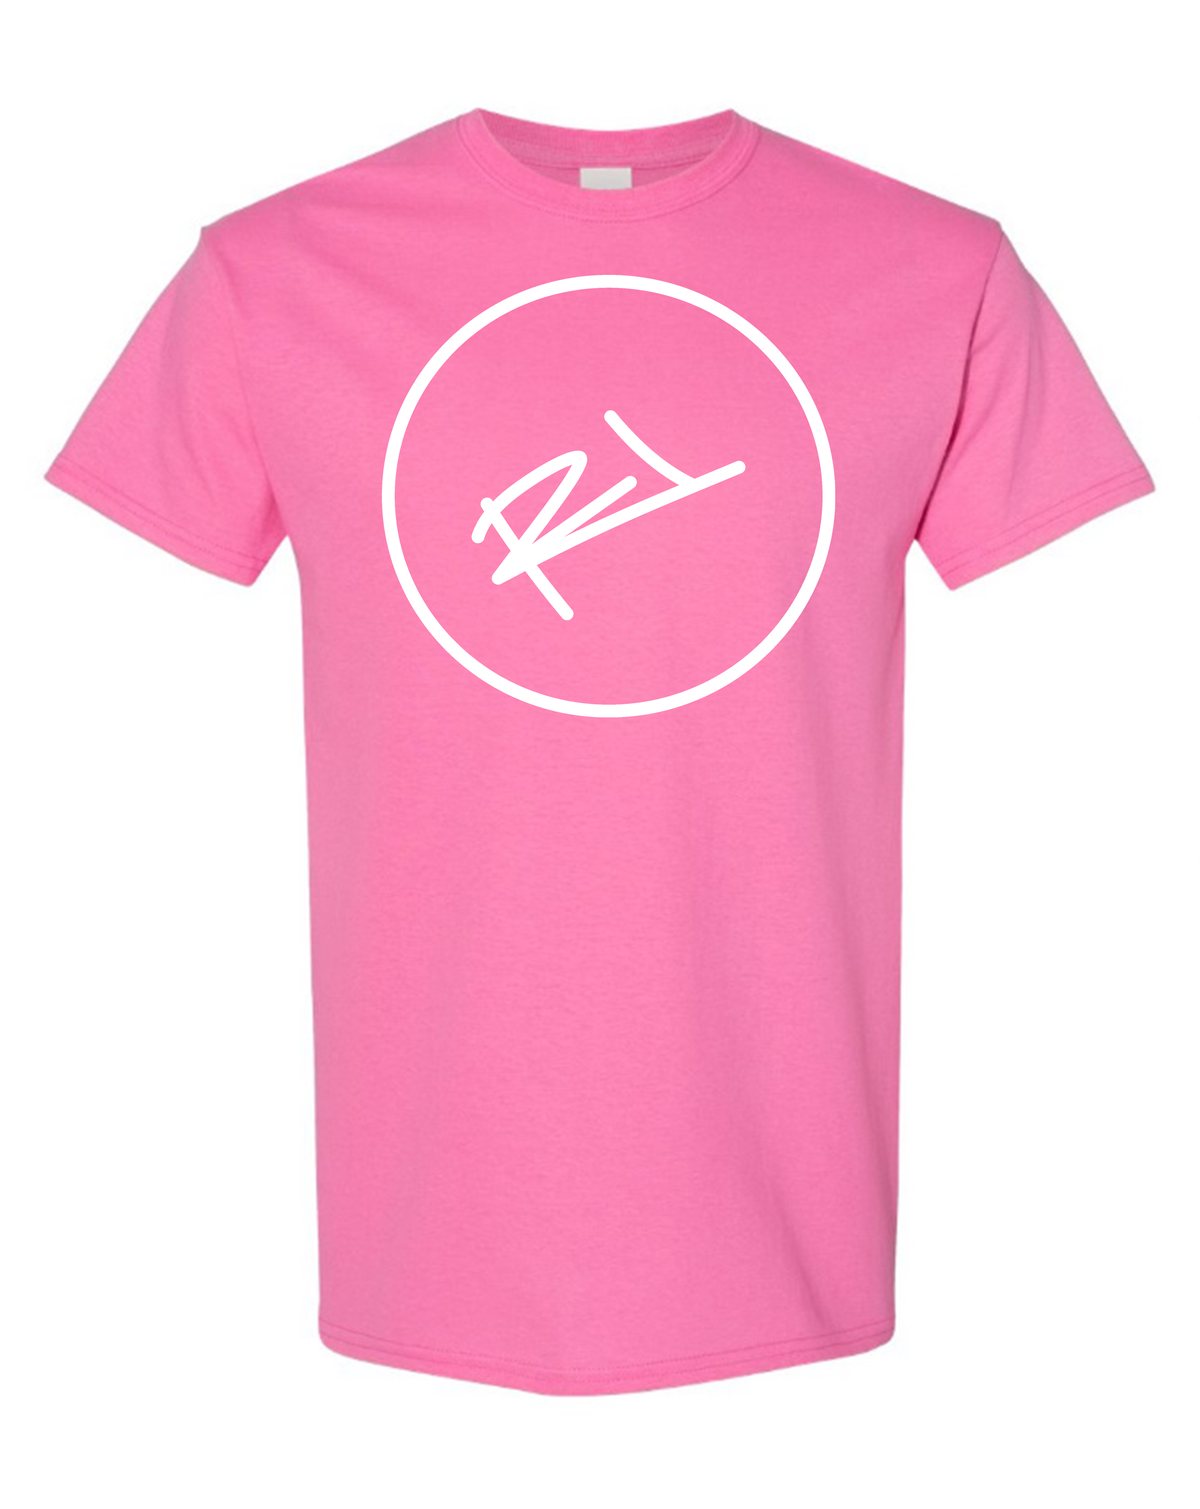 Image of THE ReL BRAND LOGO TEE IN PINK